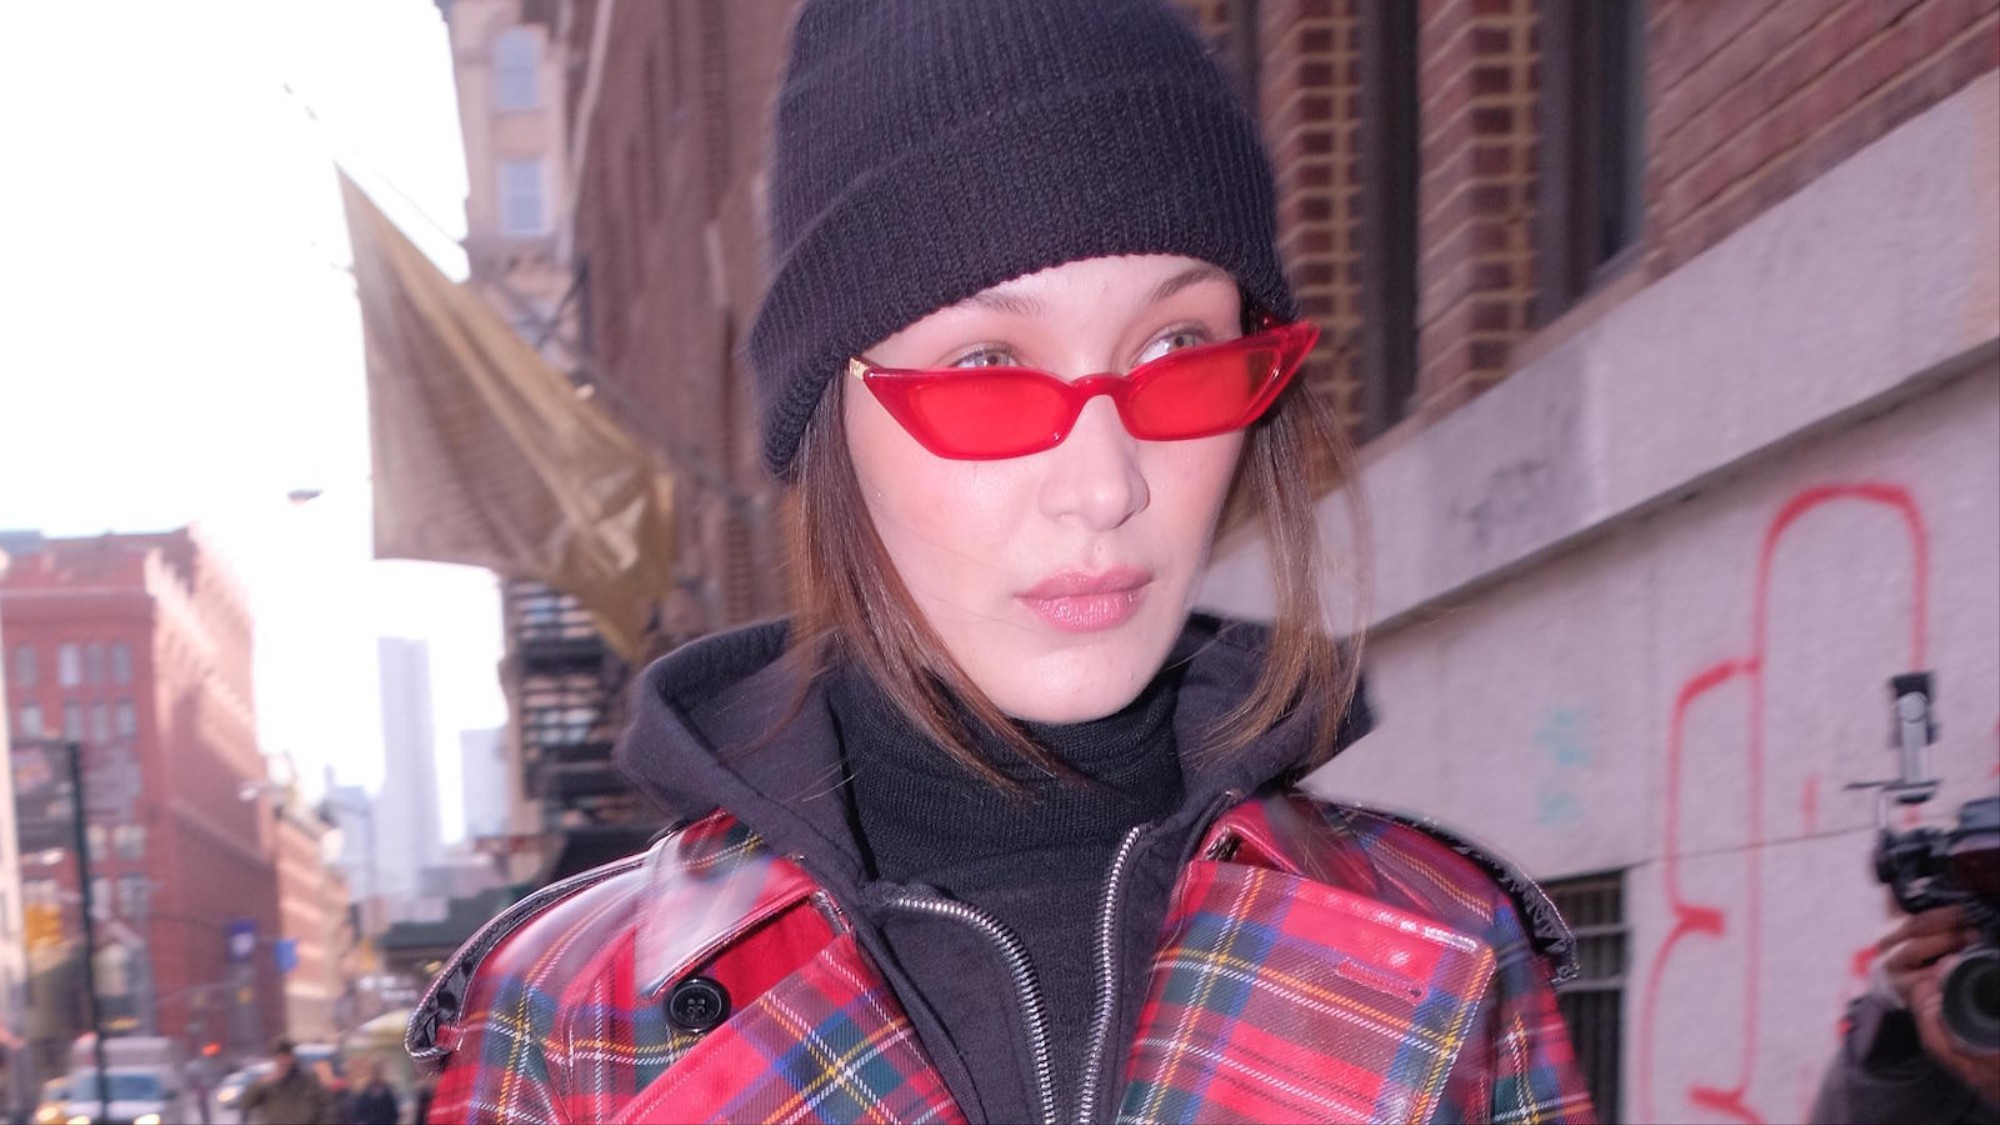 0e3b5f7c1ad6 You Are Going to Die, Whether You Wear Tiny Sunglasses or Not - VICE